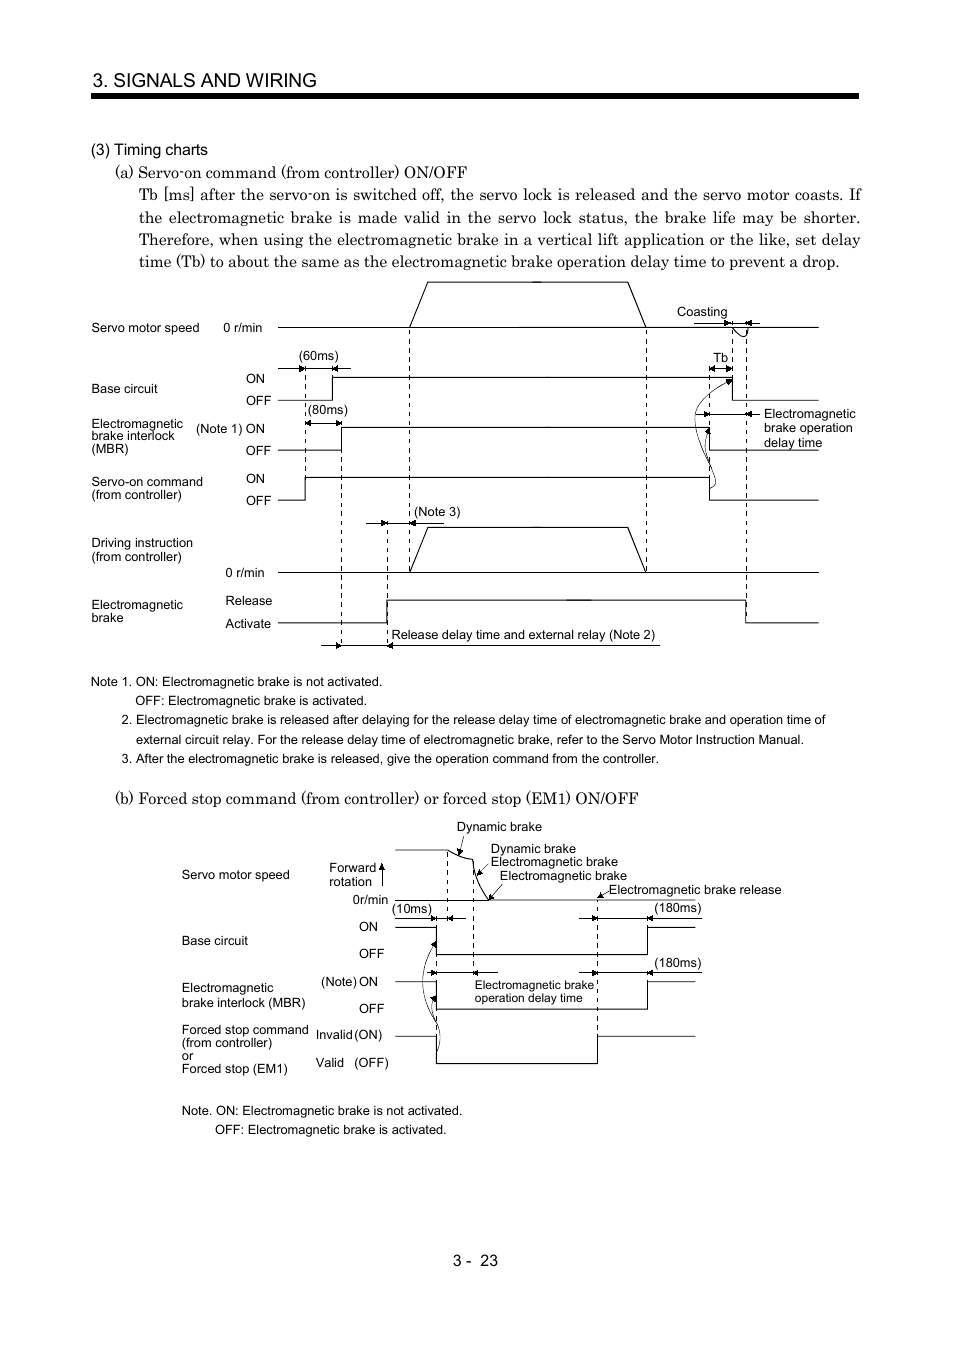 Signals and wiring | MITSUBISHI ELECTRIC Merservo MR-J2S- B User Manual |  Page 66 / 236